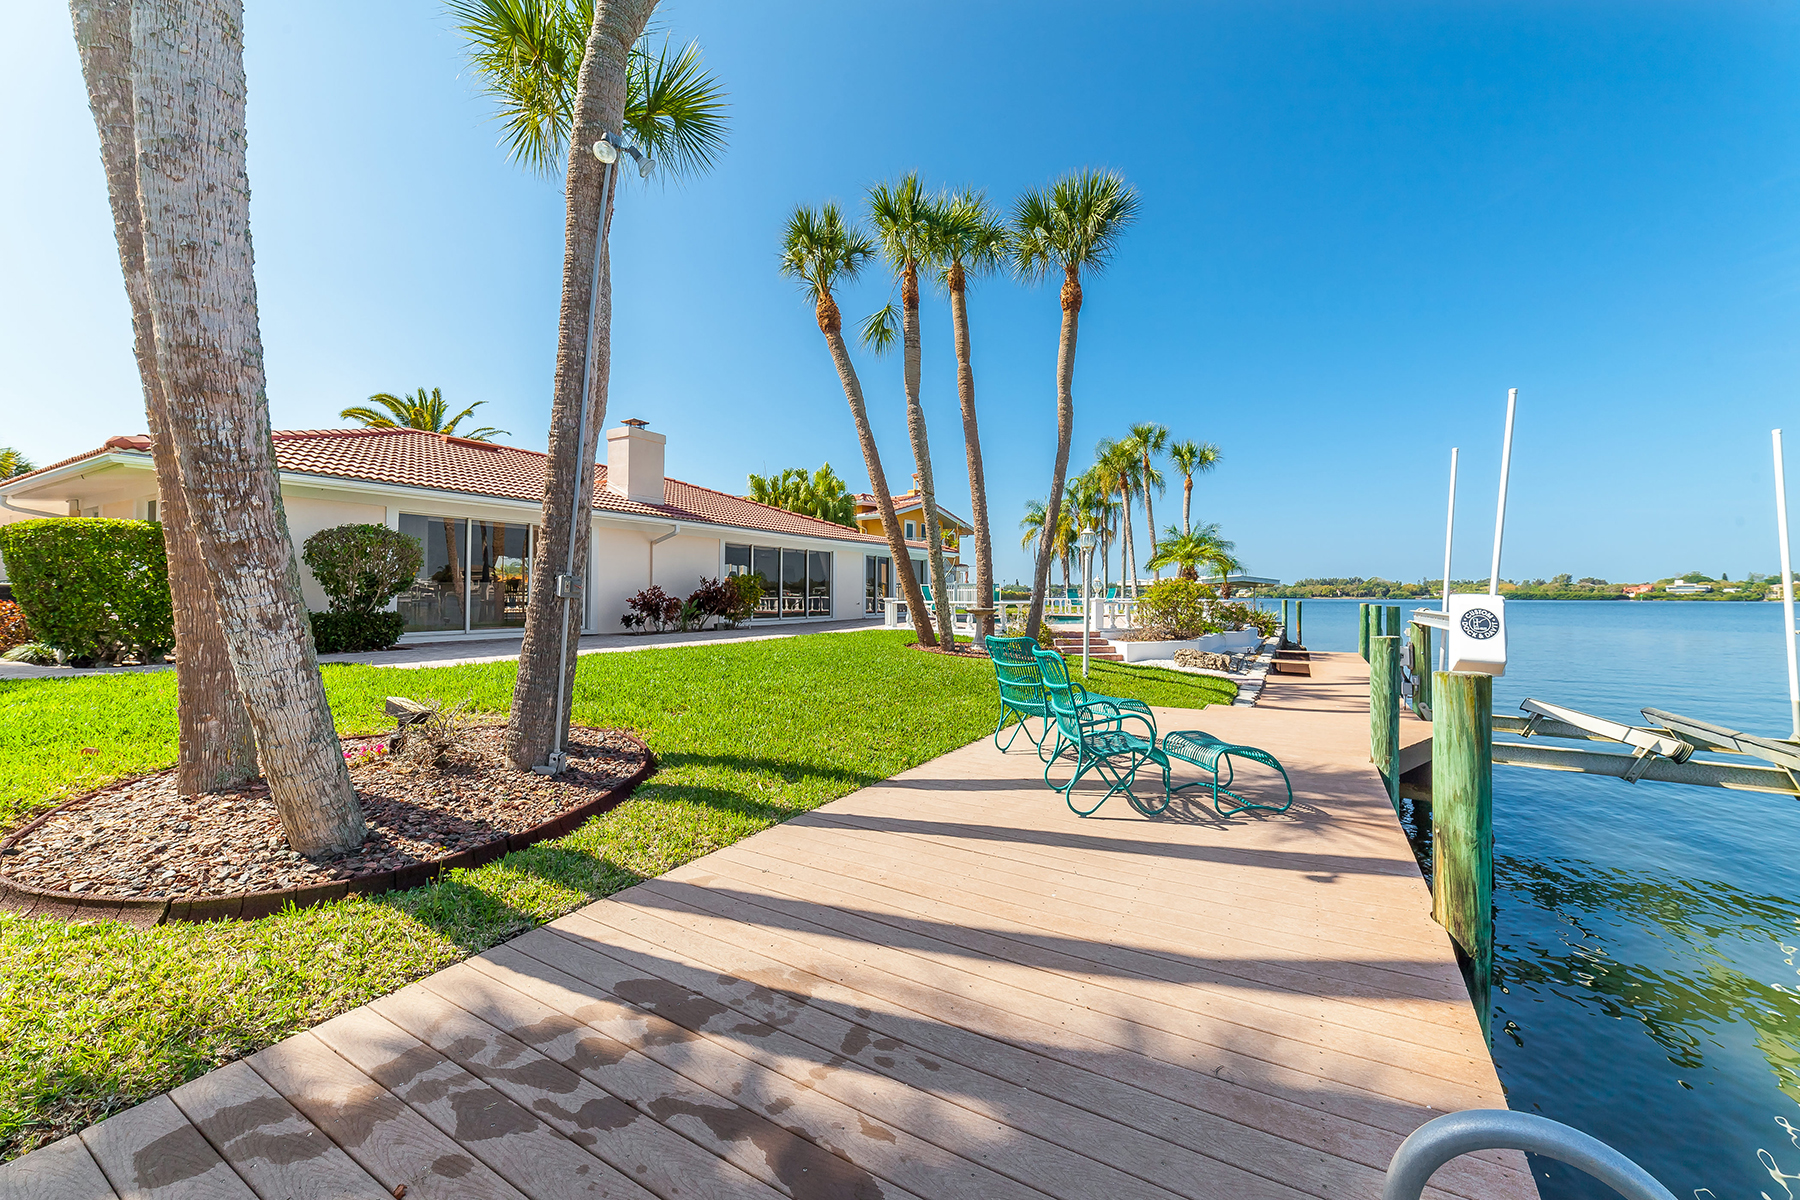 Land for Sale at SOUTHPOINTE SHORES 1733 Little Pointe Cir 65 Sarasota, Florida, 34231 United States